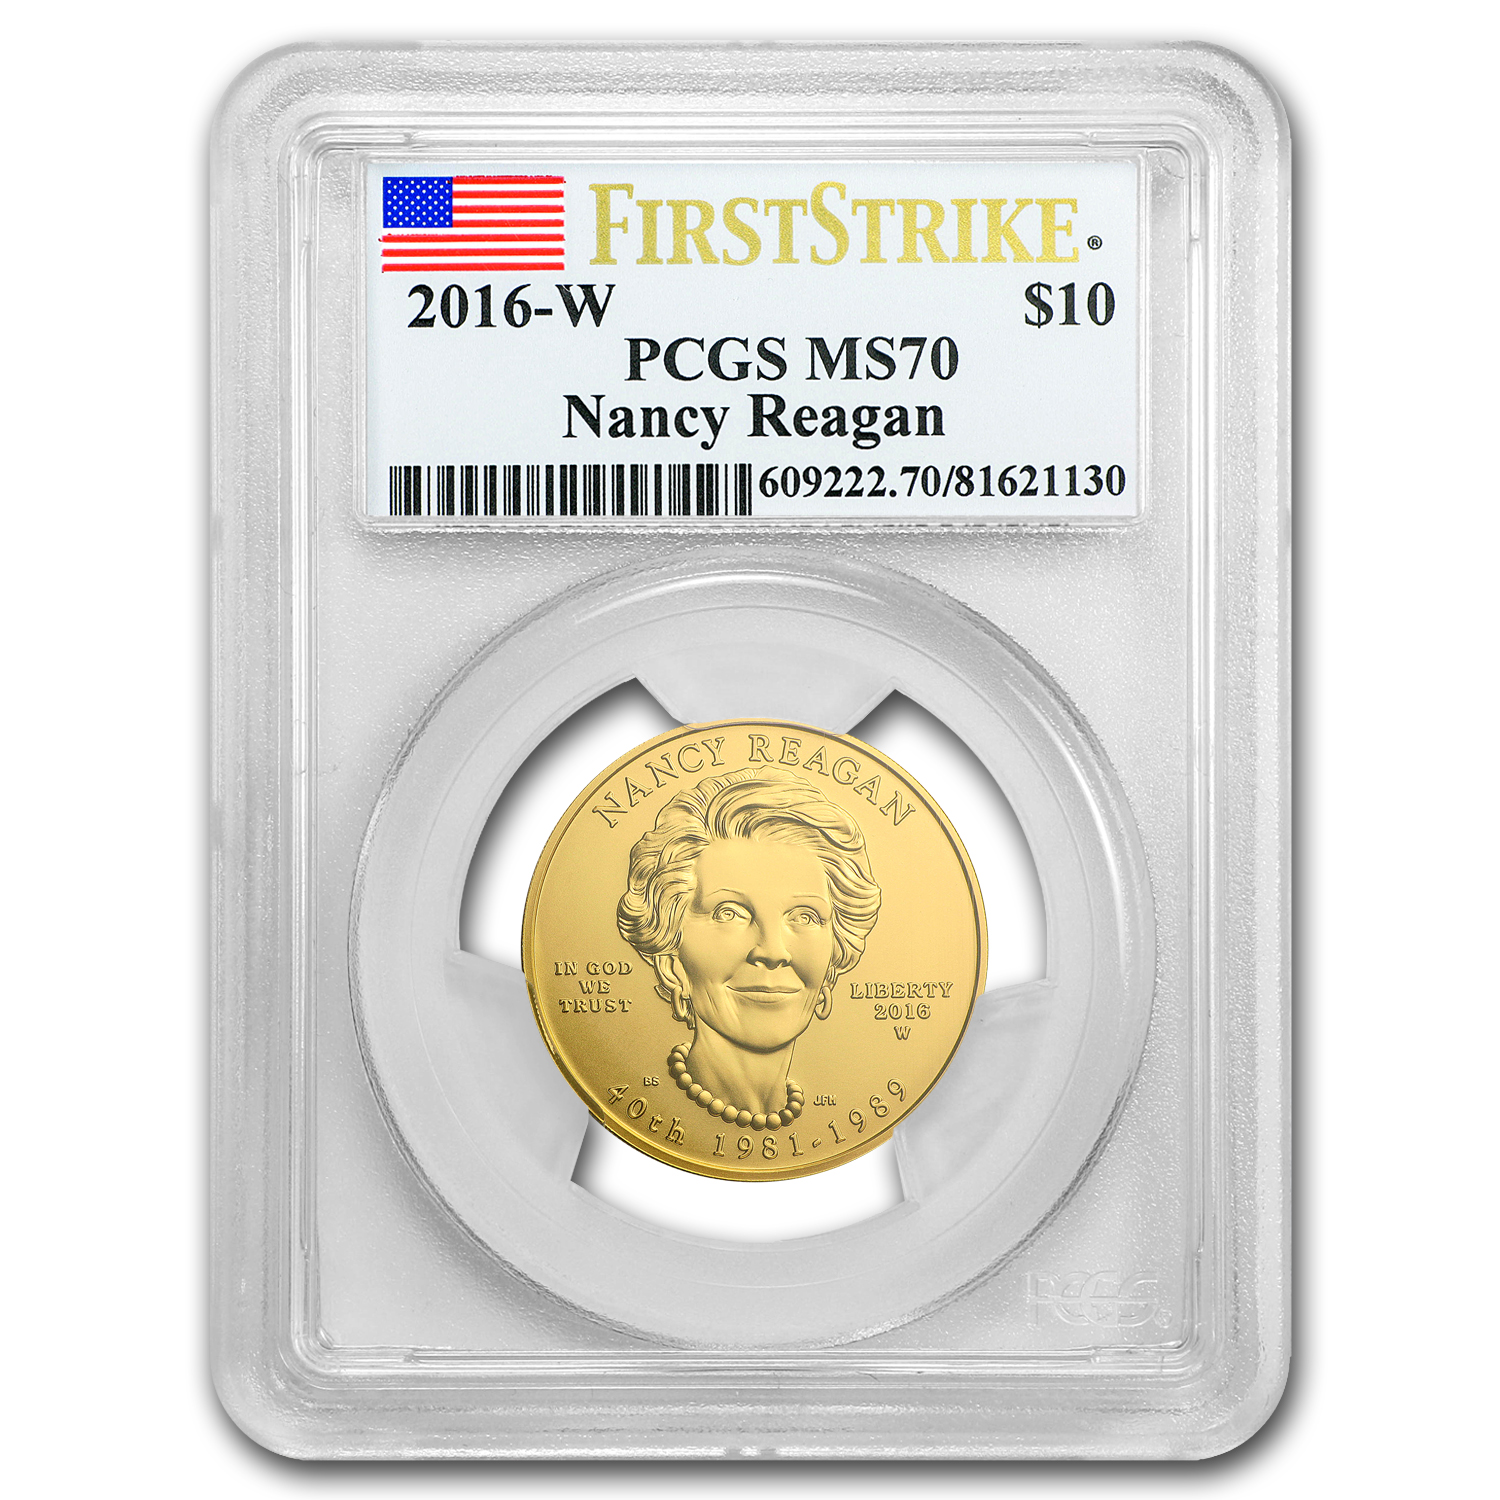 2016-W 1/2 oz Gold Nancy Reagan MS-70 PCGS (FS)